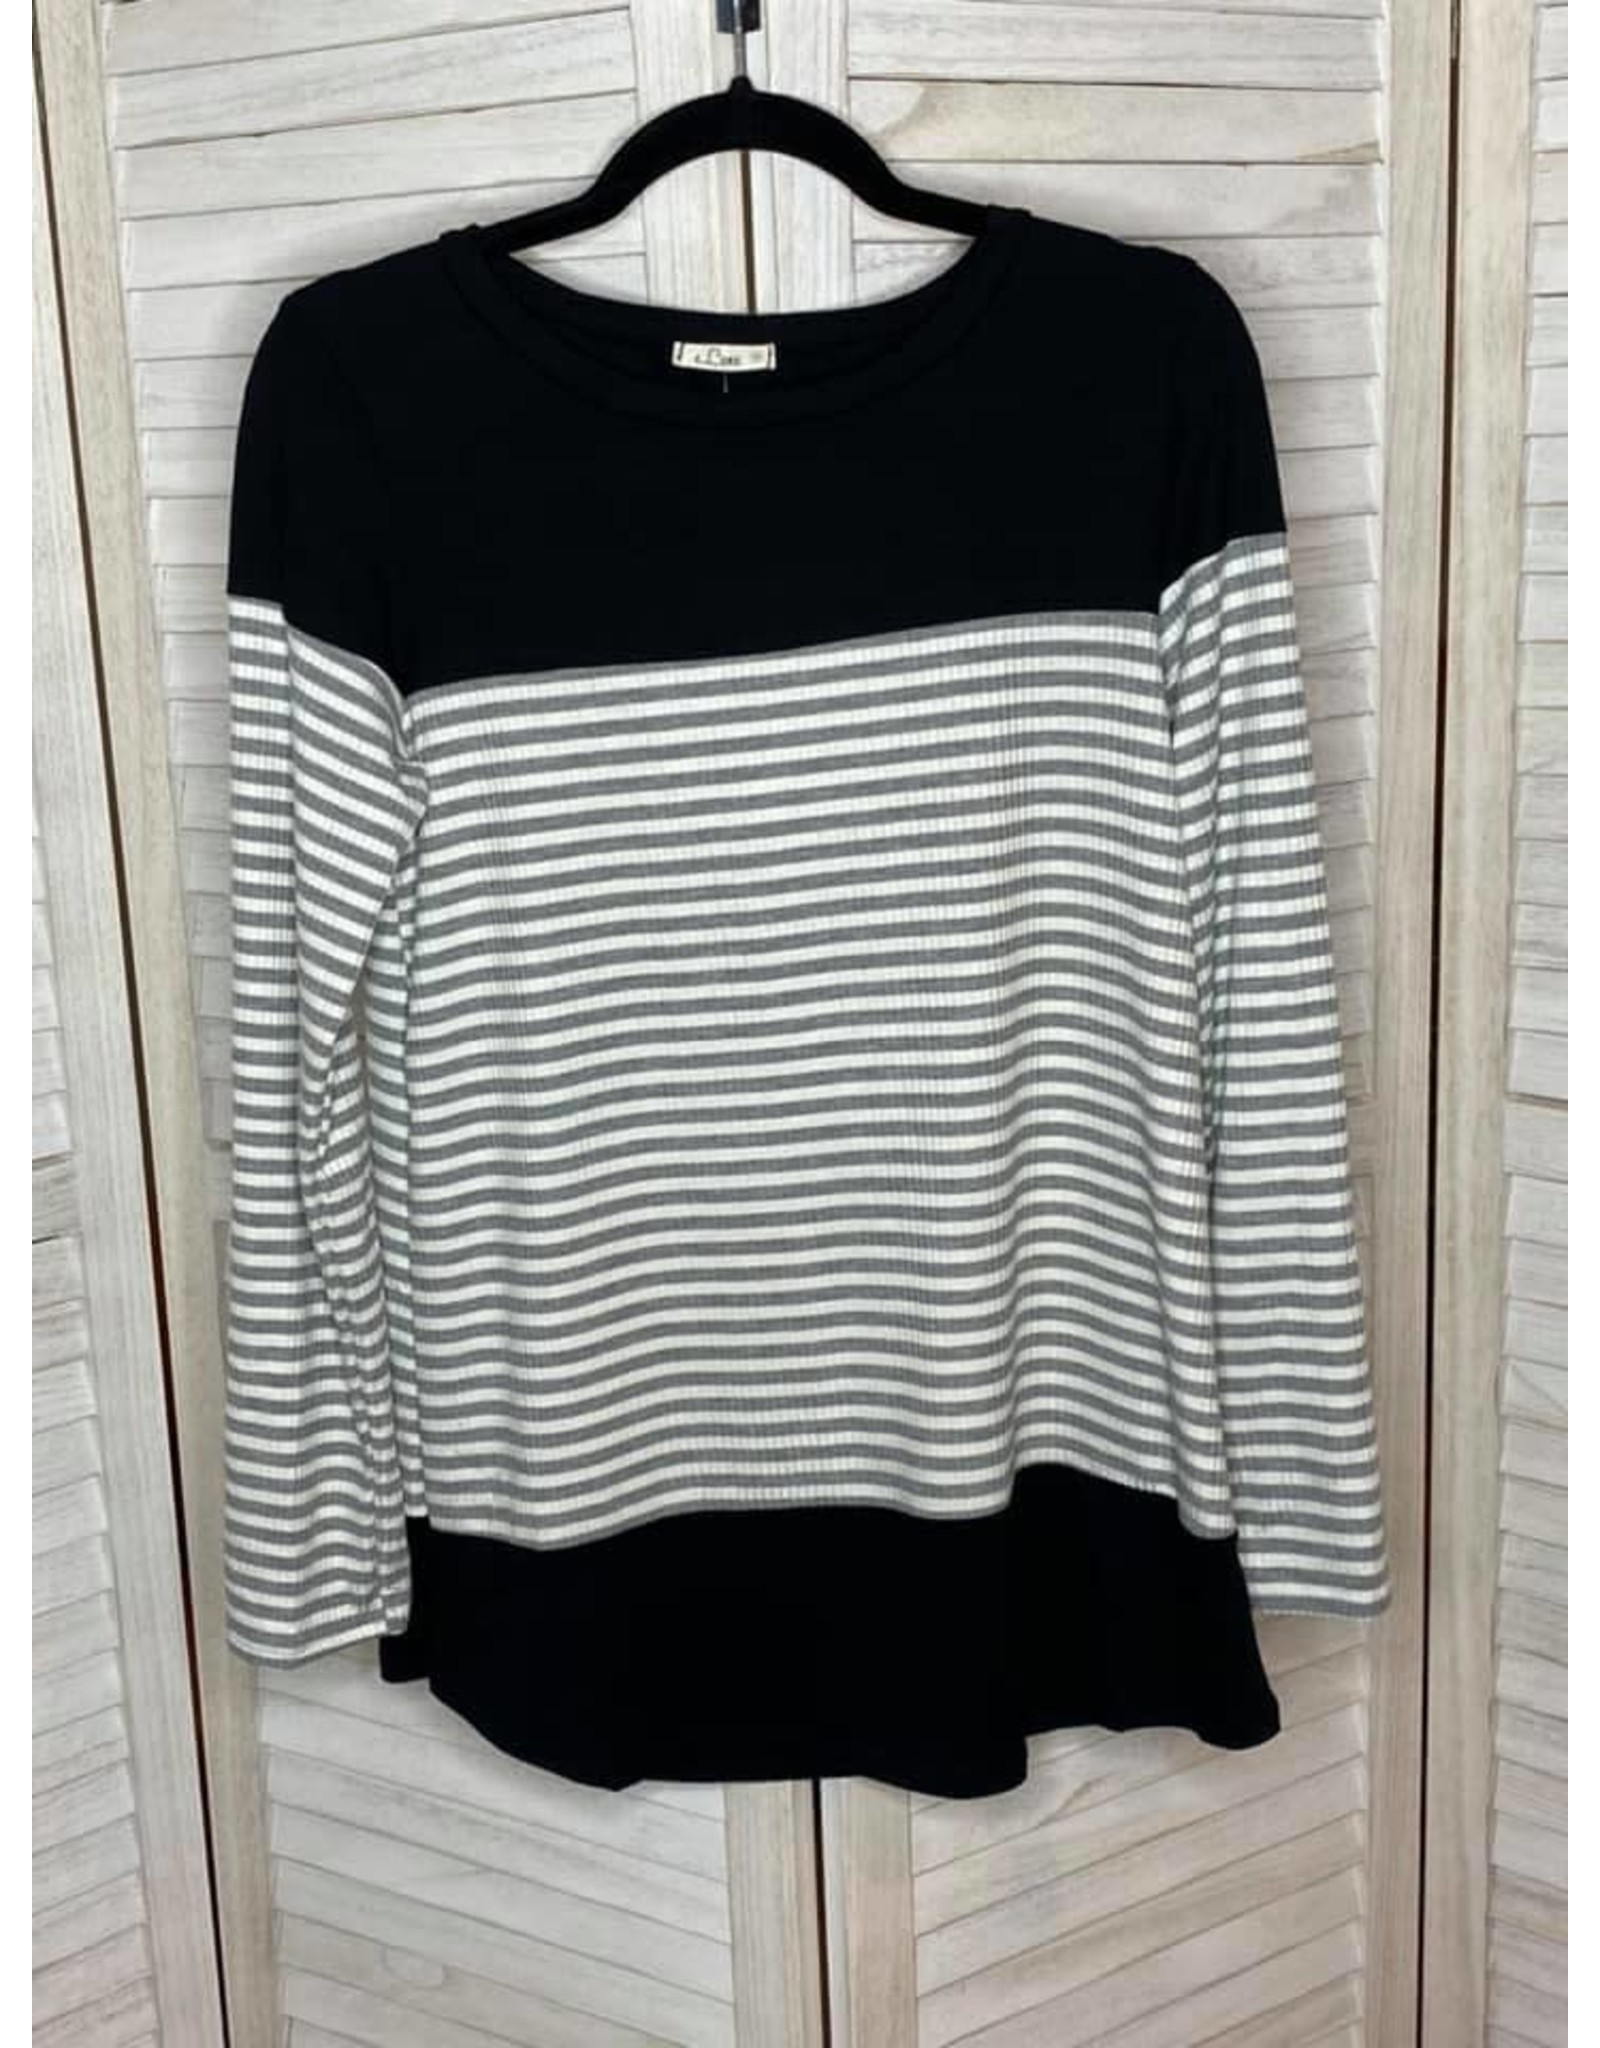 e. Luna Solid and Ribbed Stripe Round Neck Long Sleeve Top